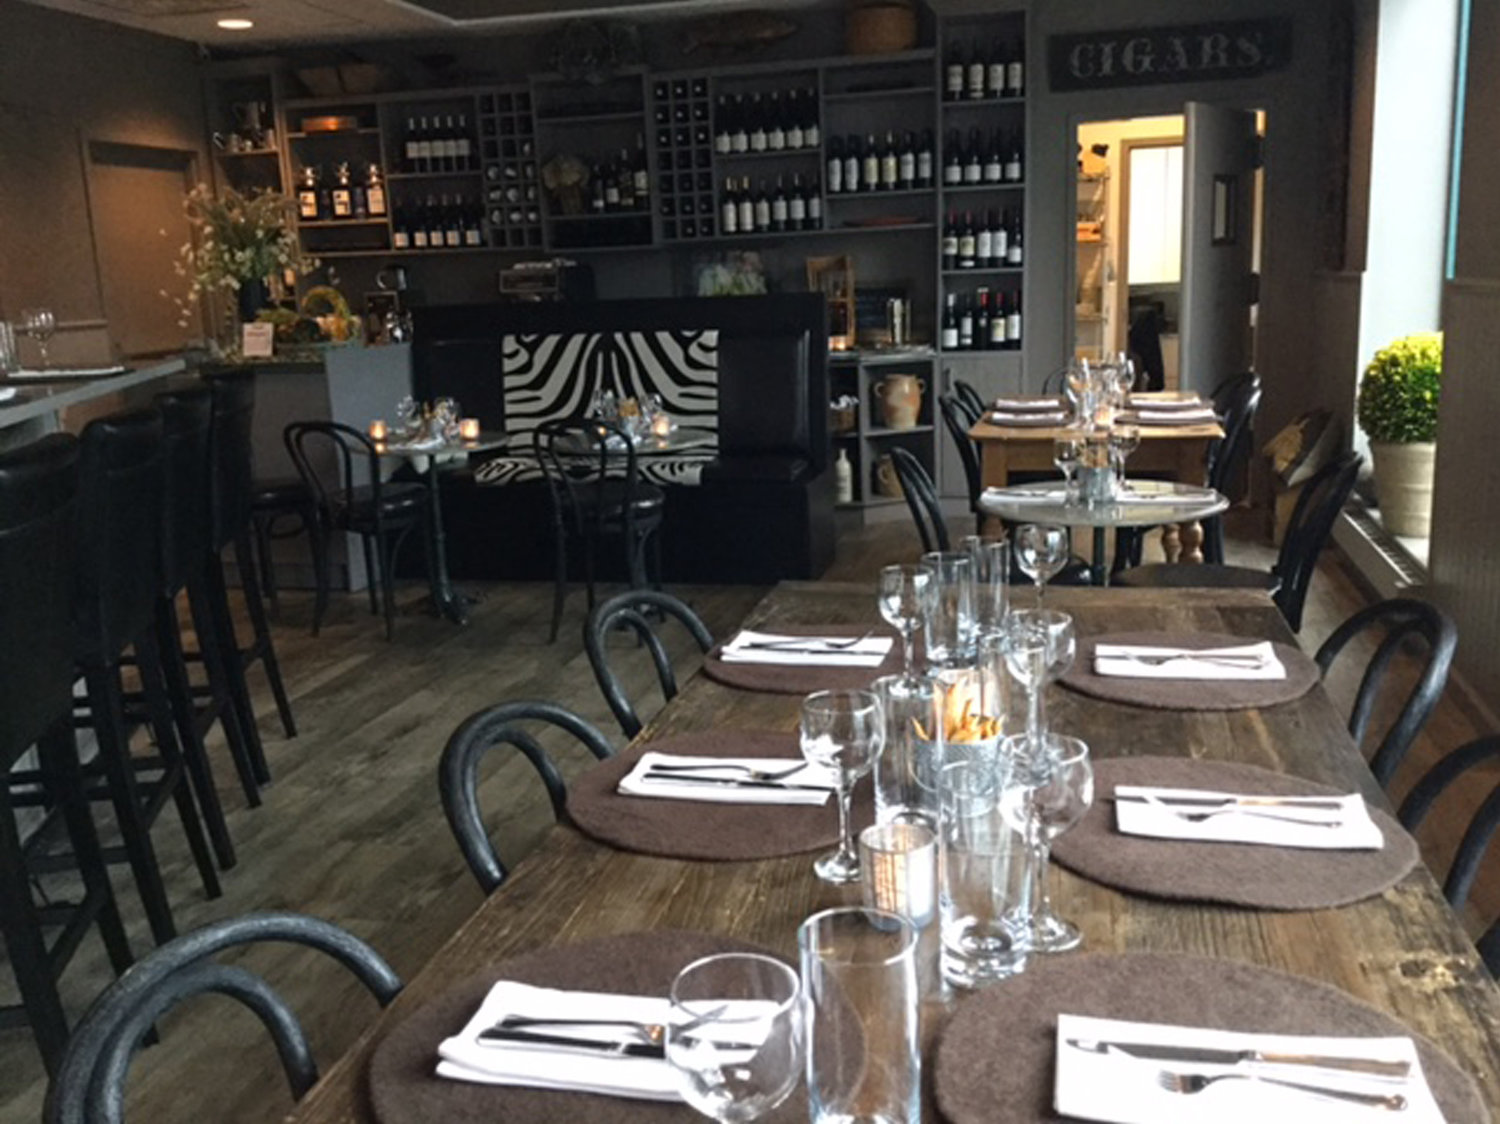 Bar Le French Flair le moulin eatery & wine bar - best french restaurant in yonkers